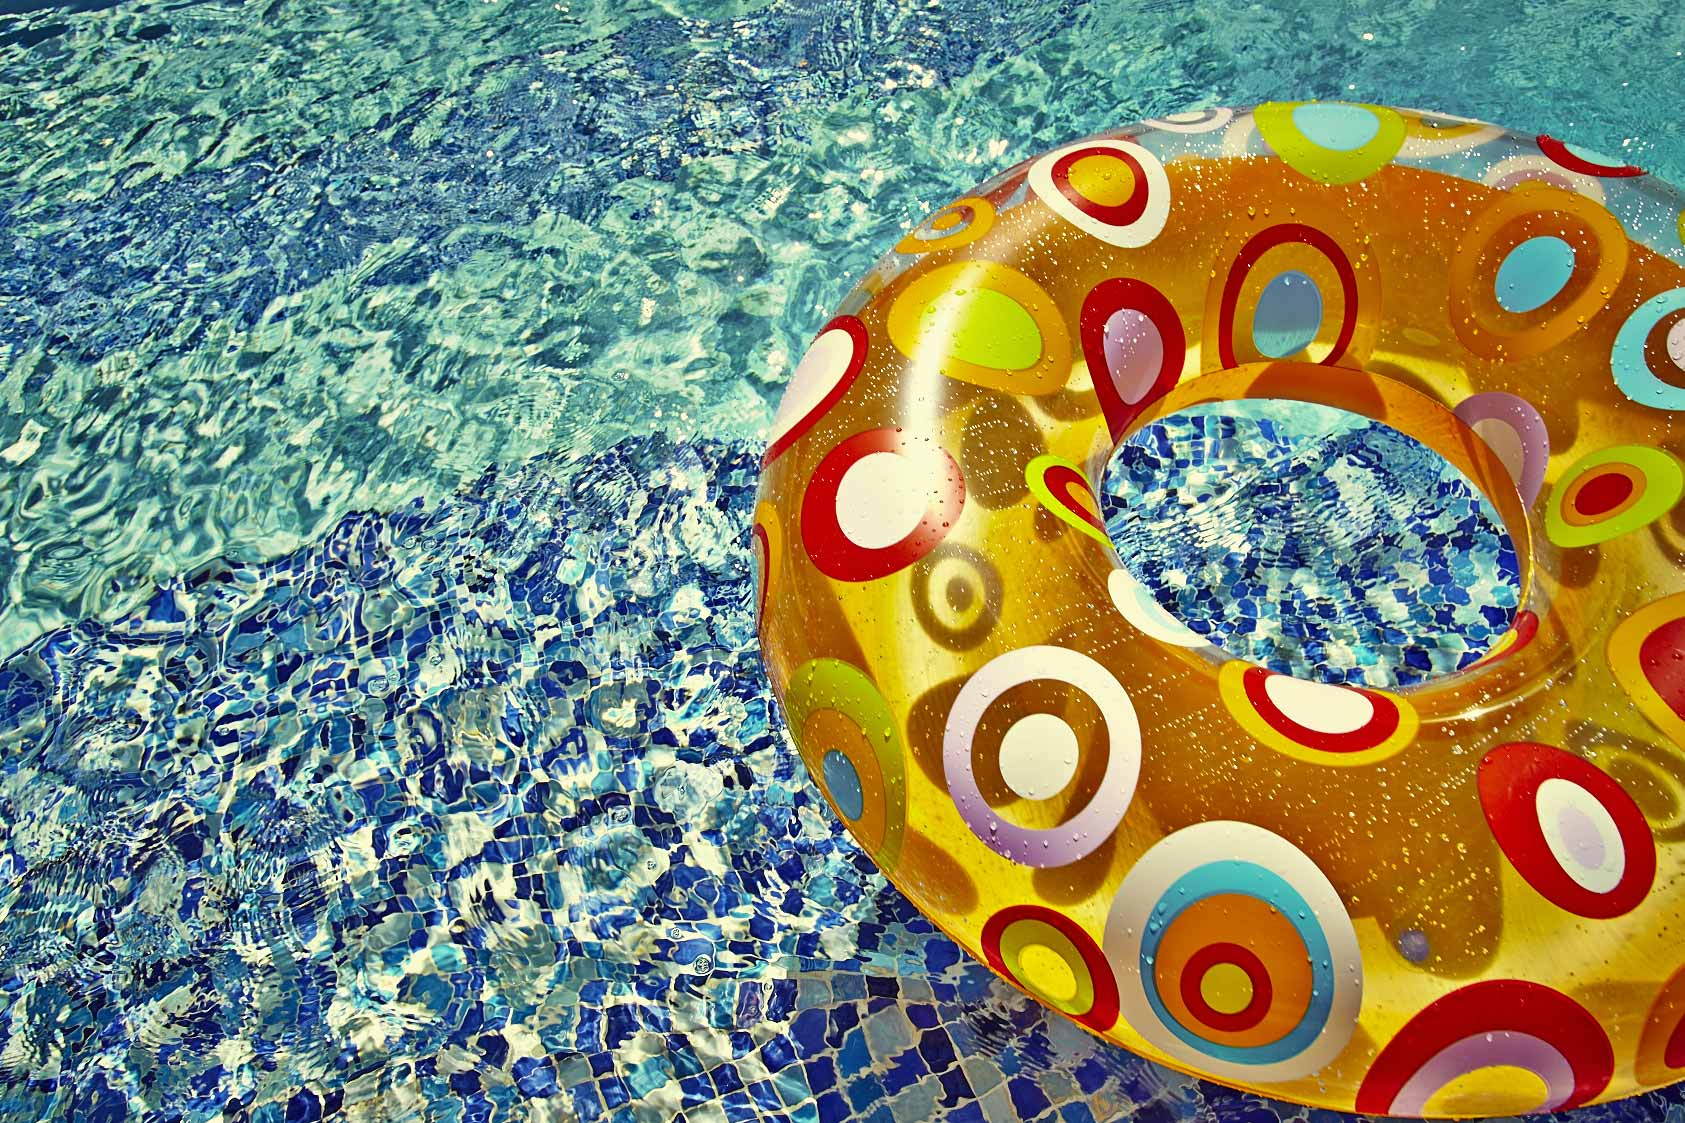 POOL-PARTY_FLOATS_005